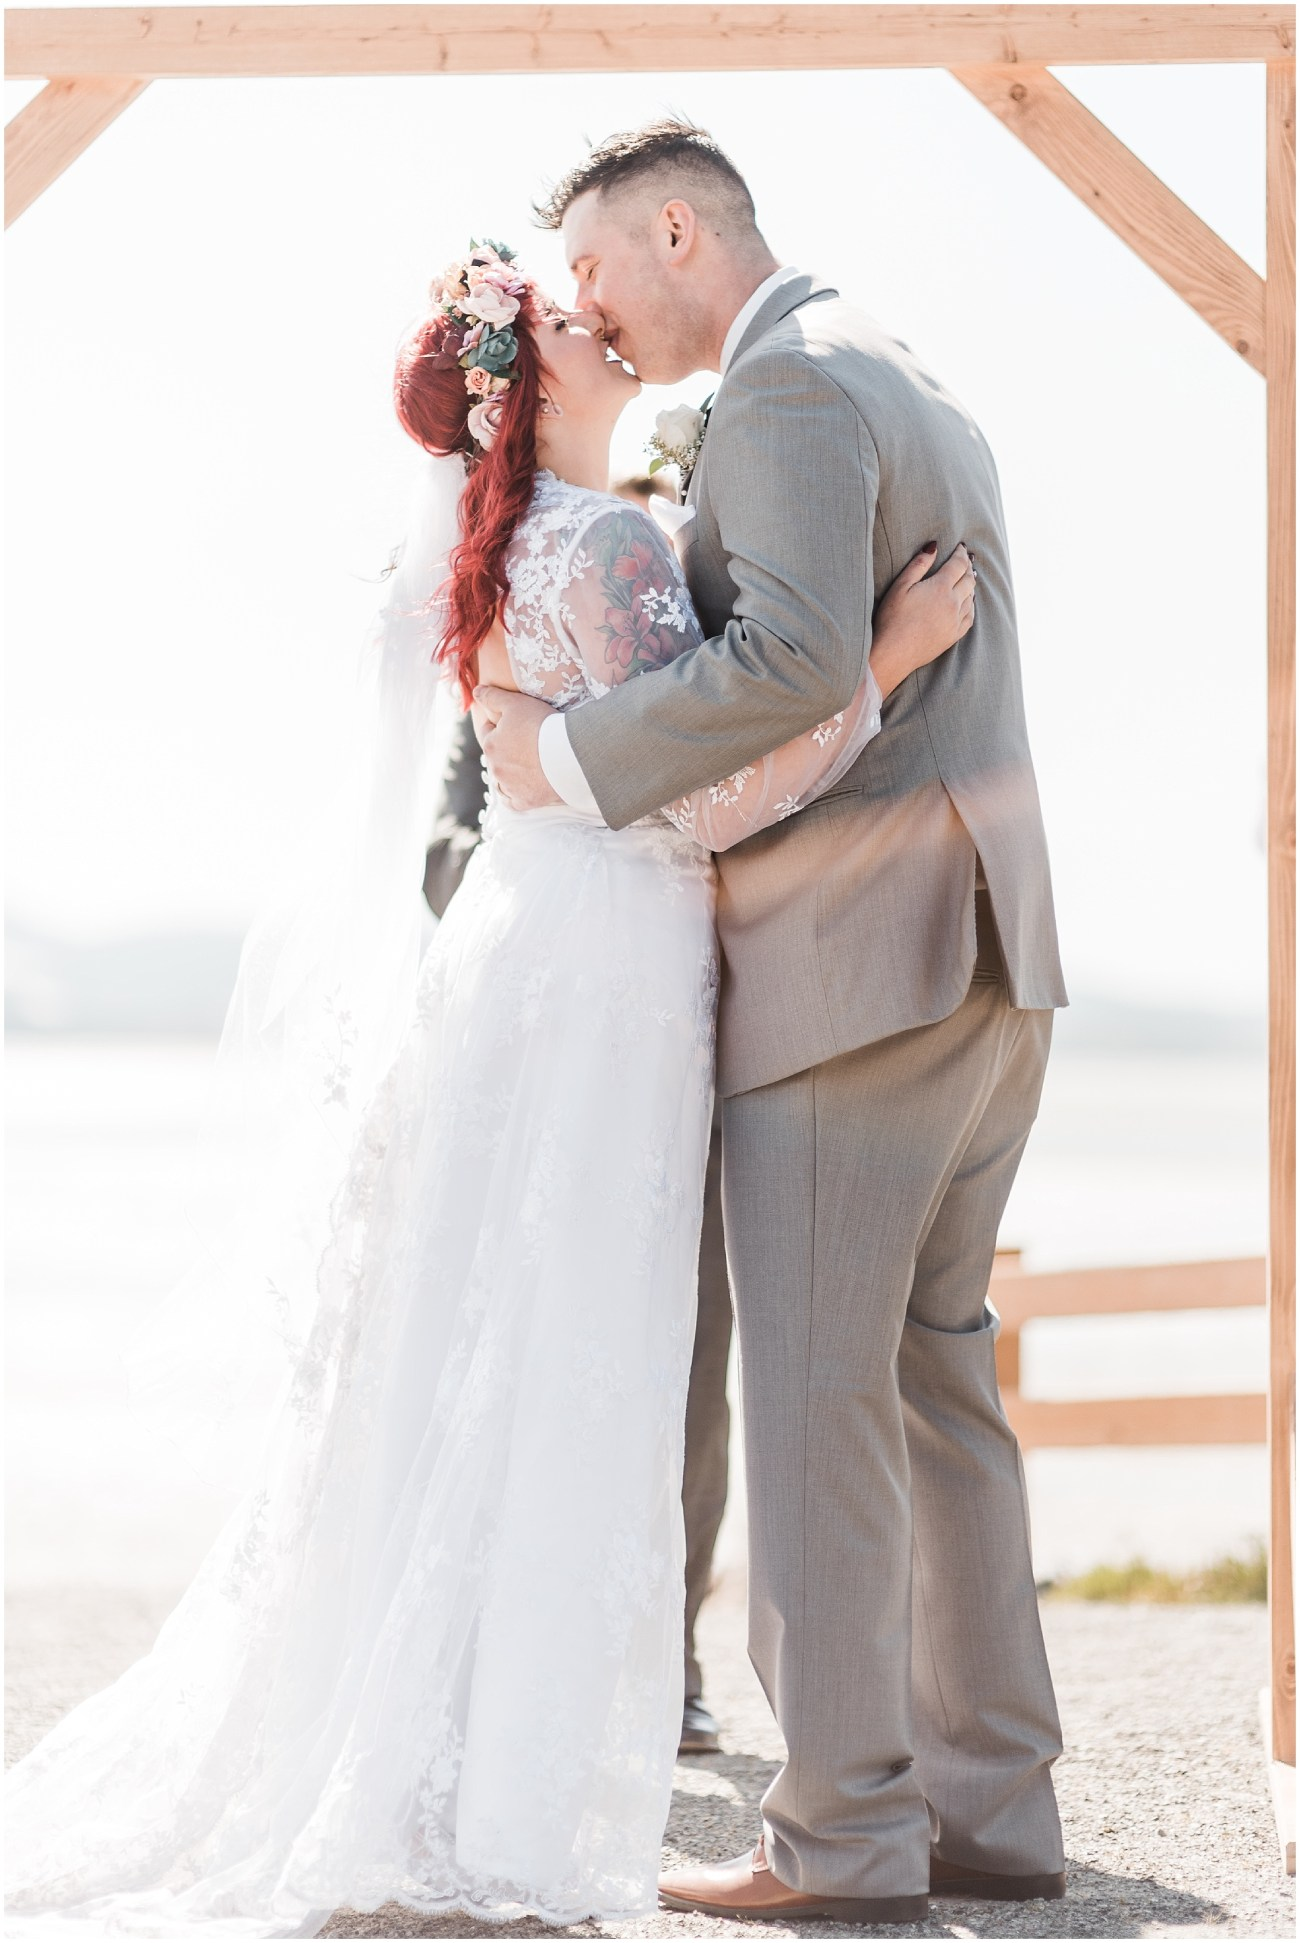 Photo of Bride and Groom kissing during their wedding ceremony at Bayview State Park